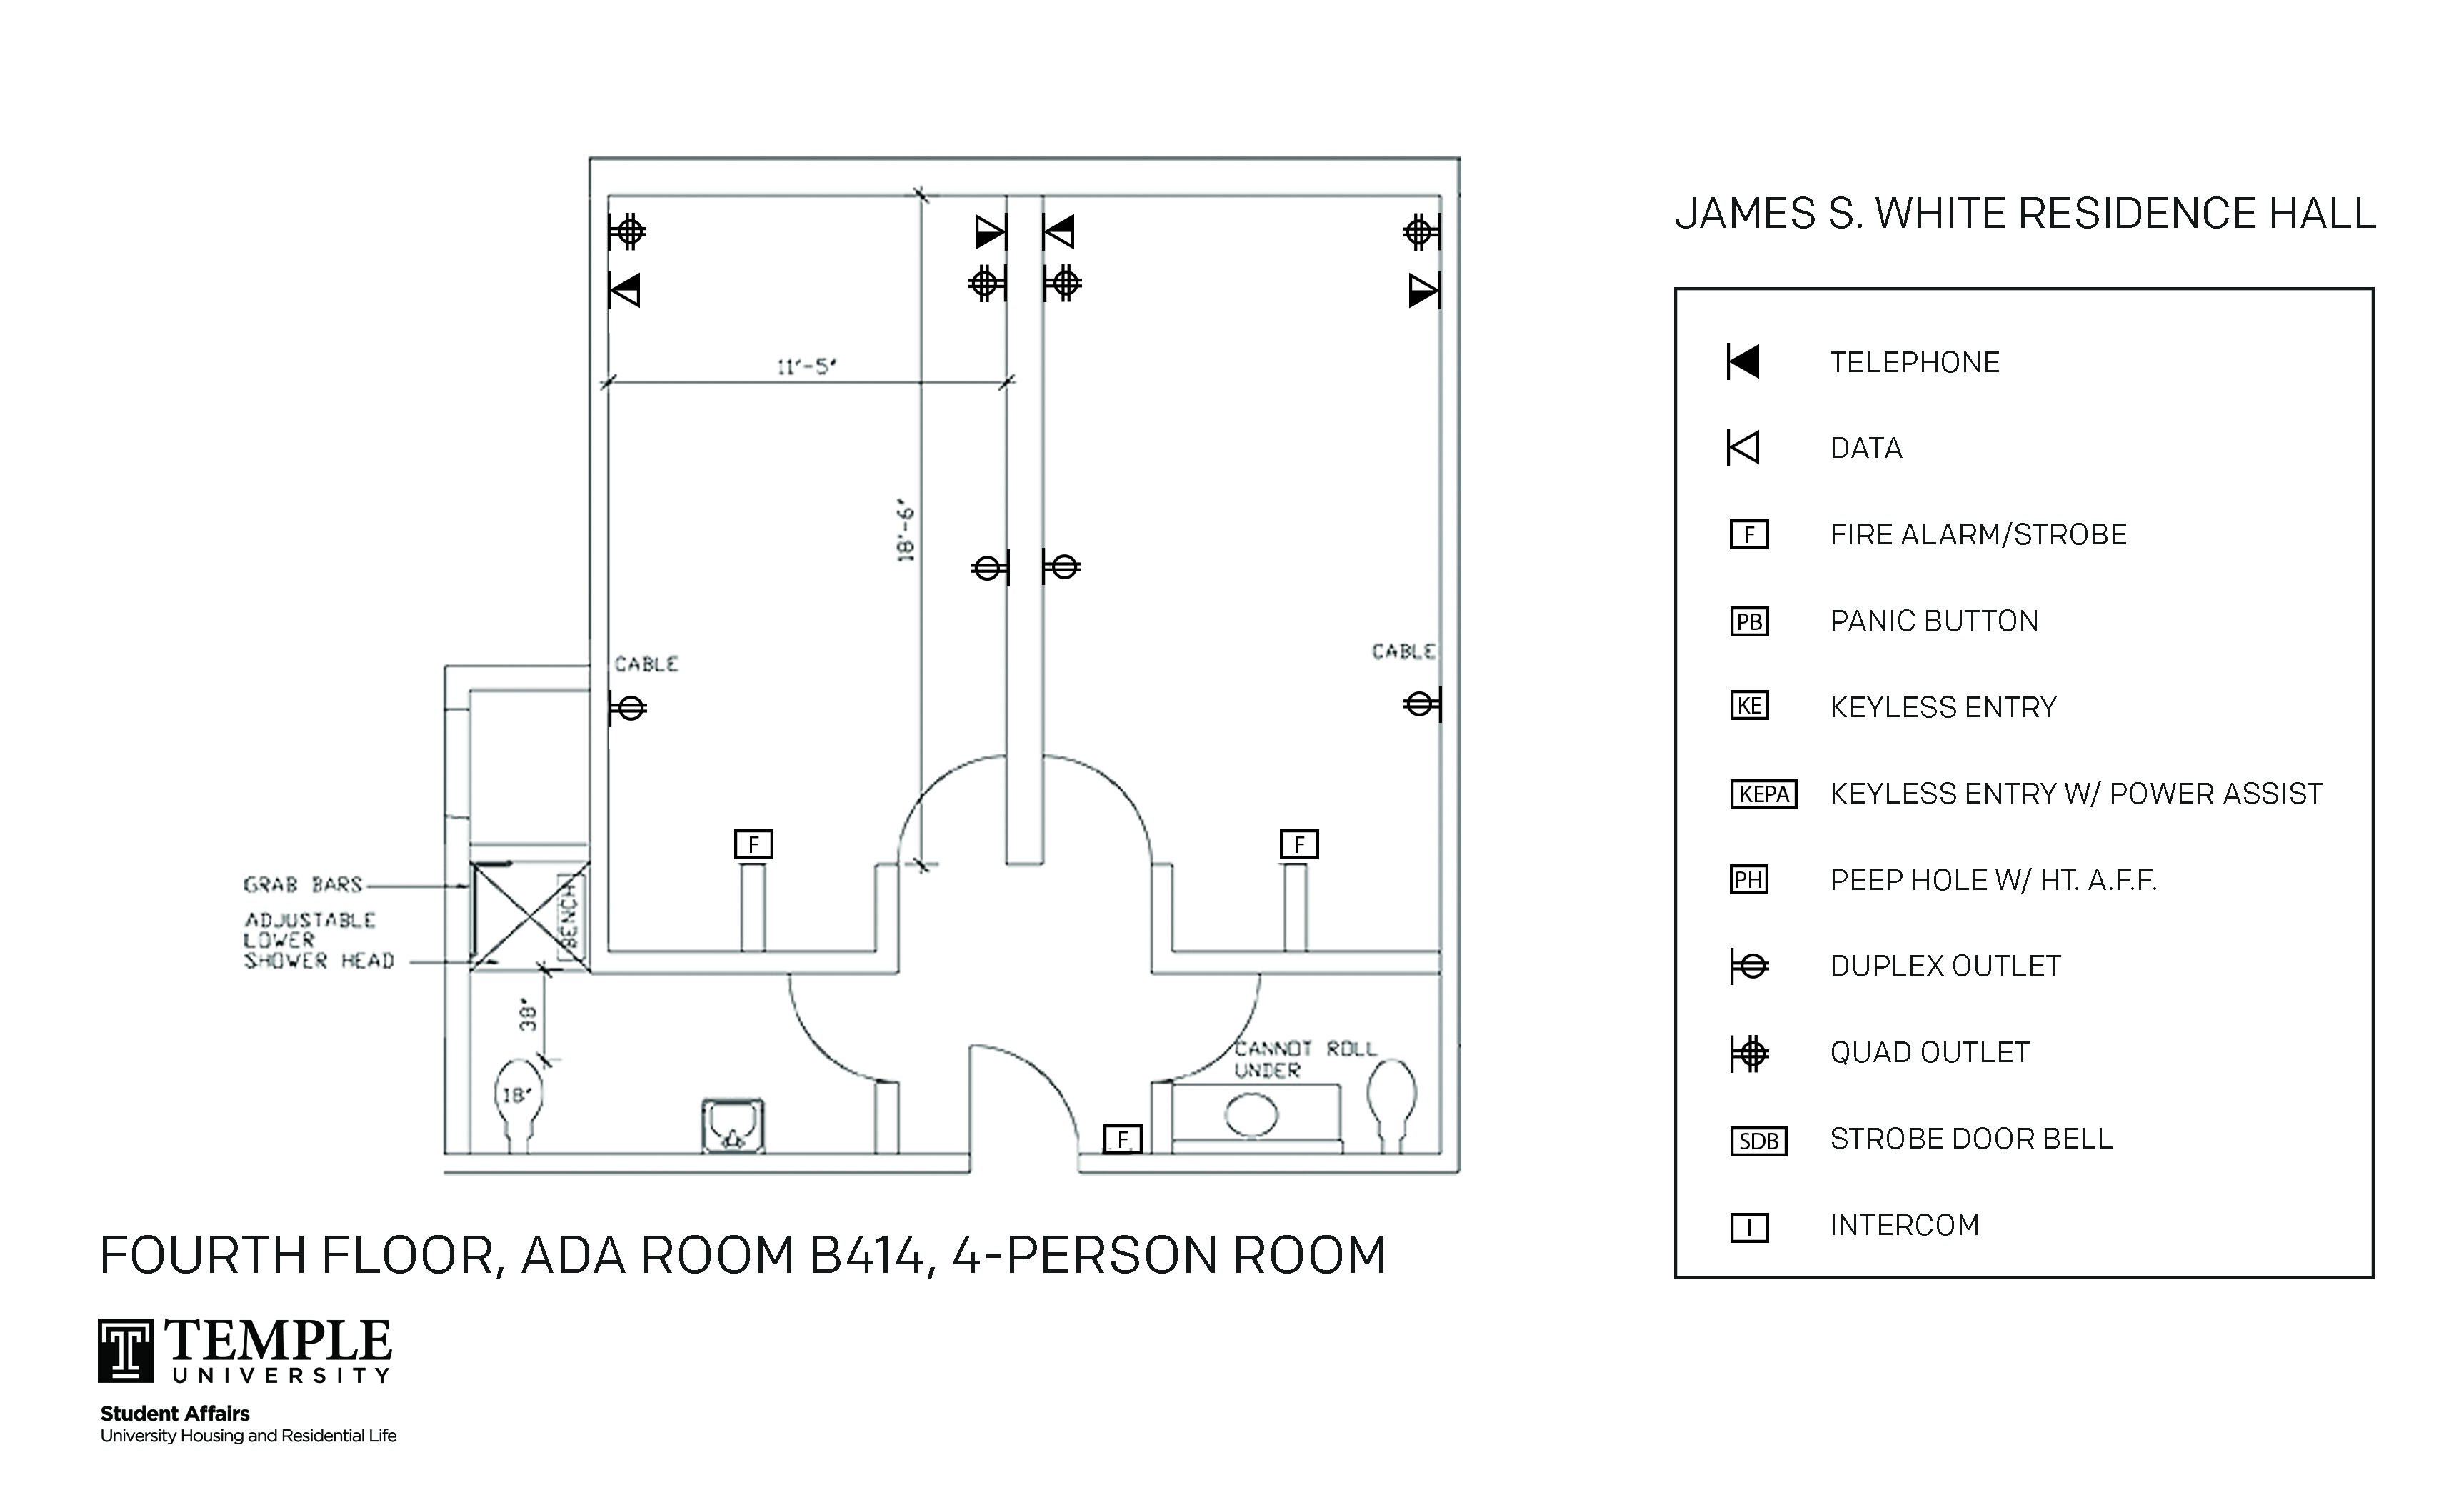 Accessible Room Diagrams: 4 person, 2 bedroom Suite - B414